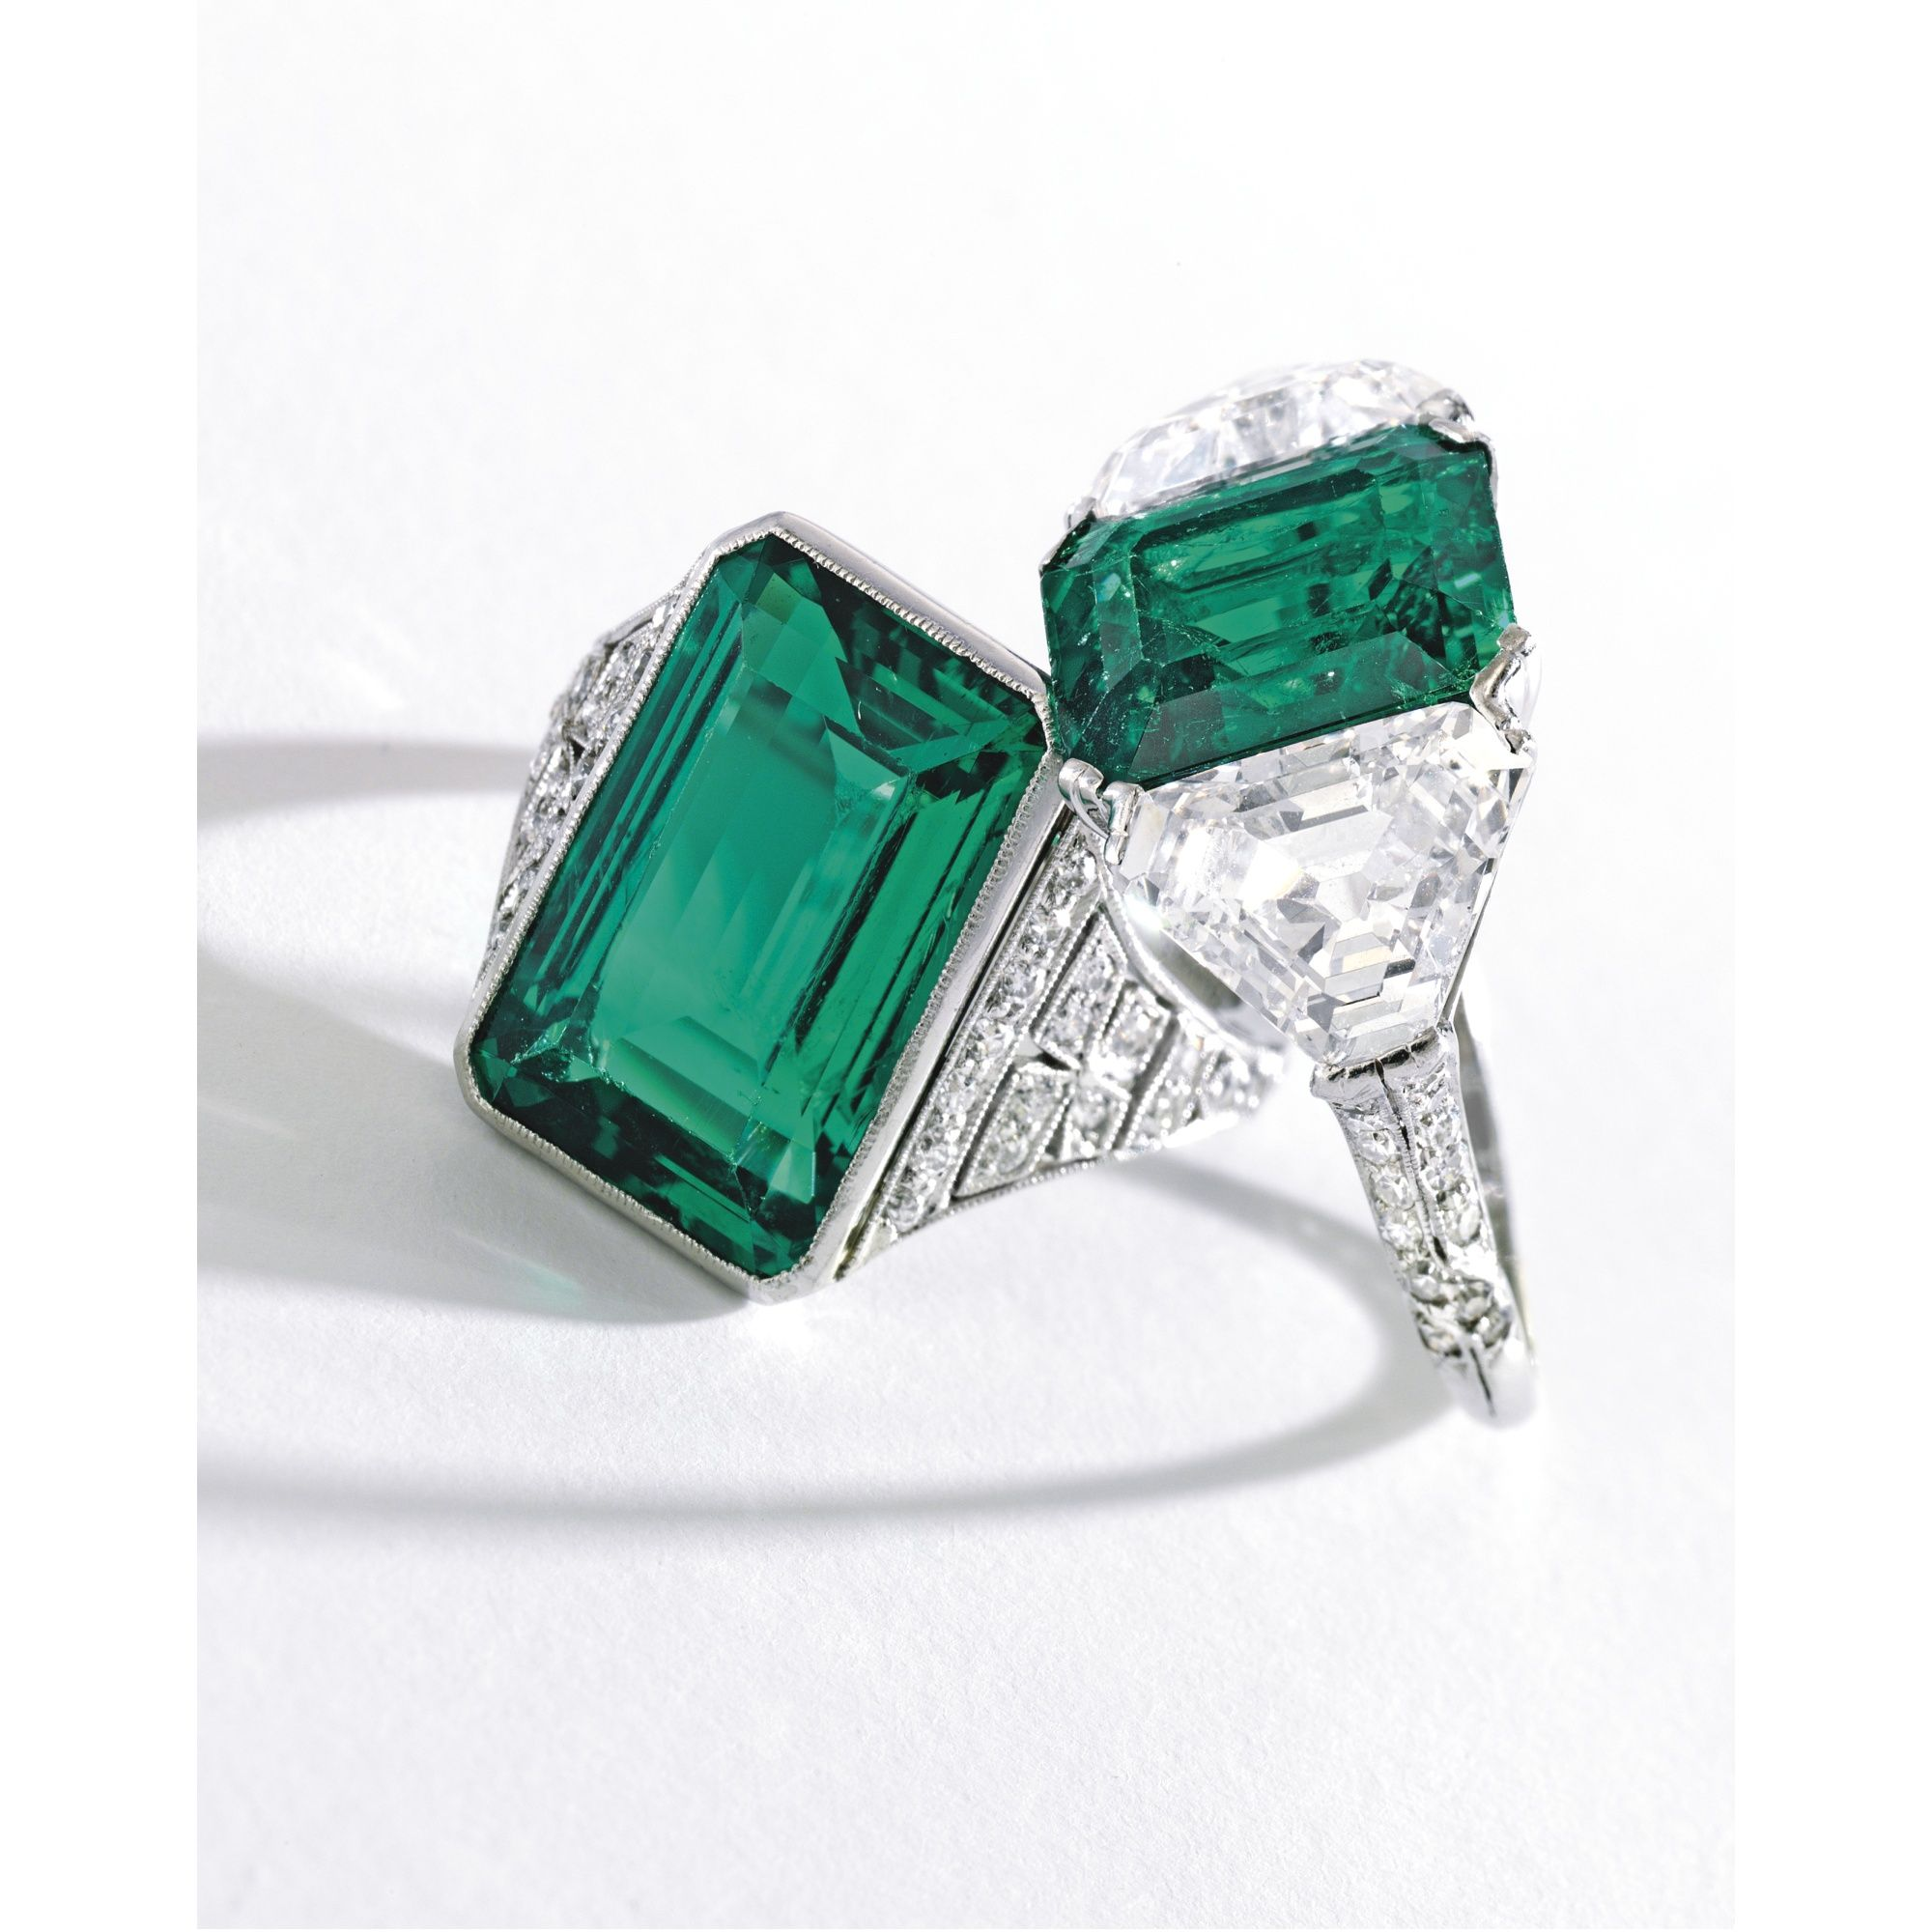 cabochon emerald for earring ring and cocktail id diamond suite sale jewelry at master j rings emeral